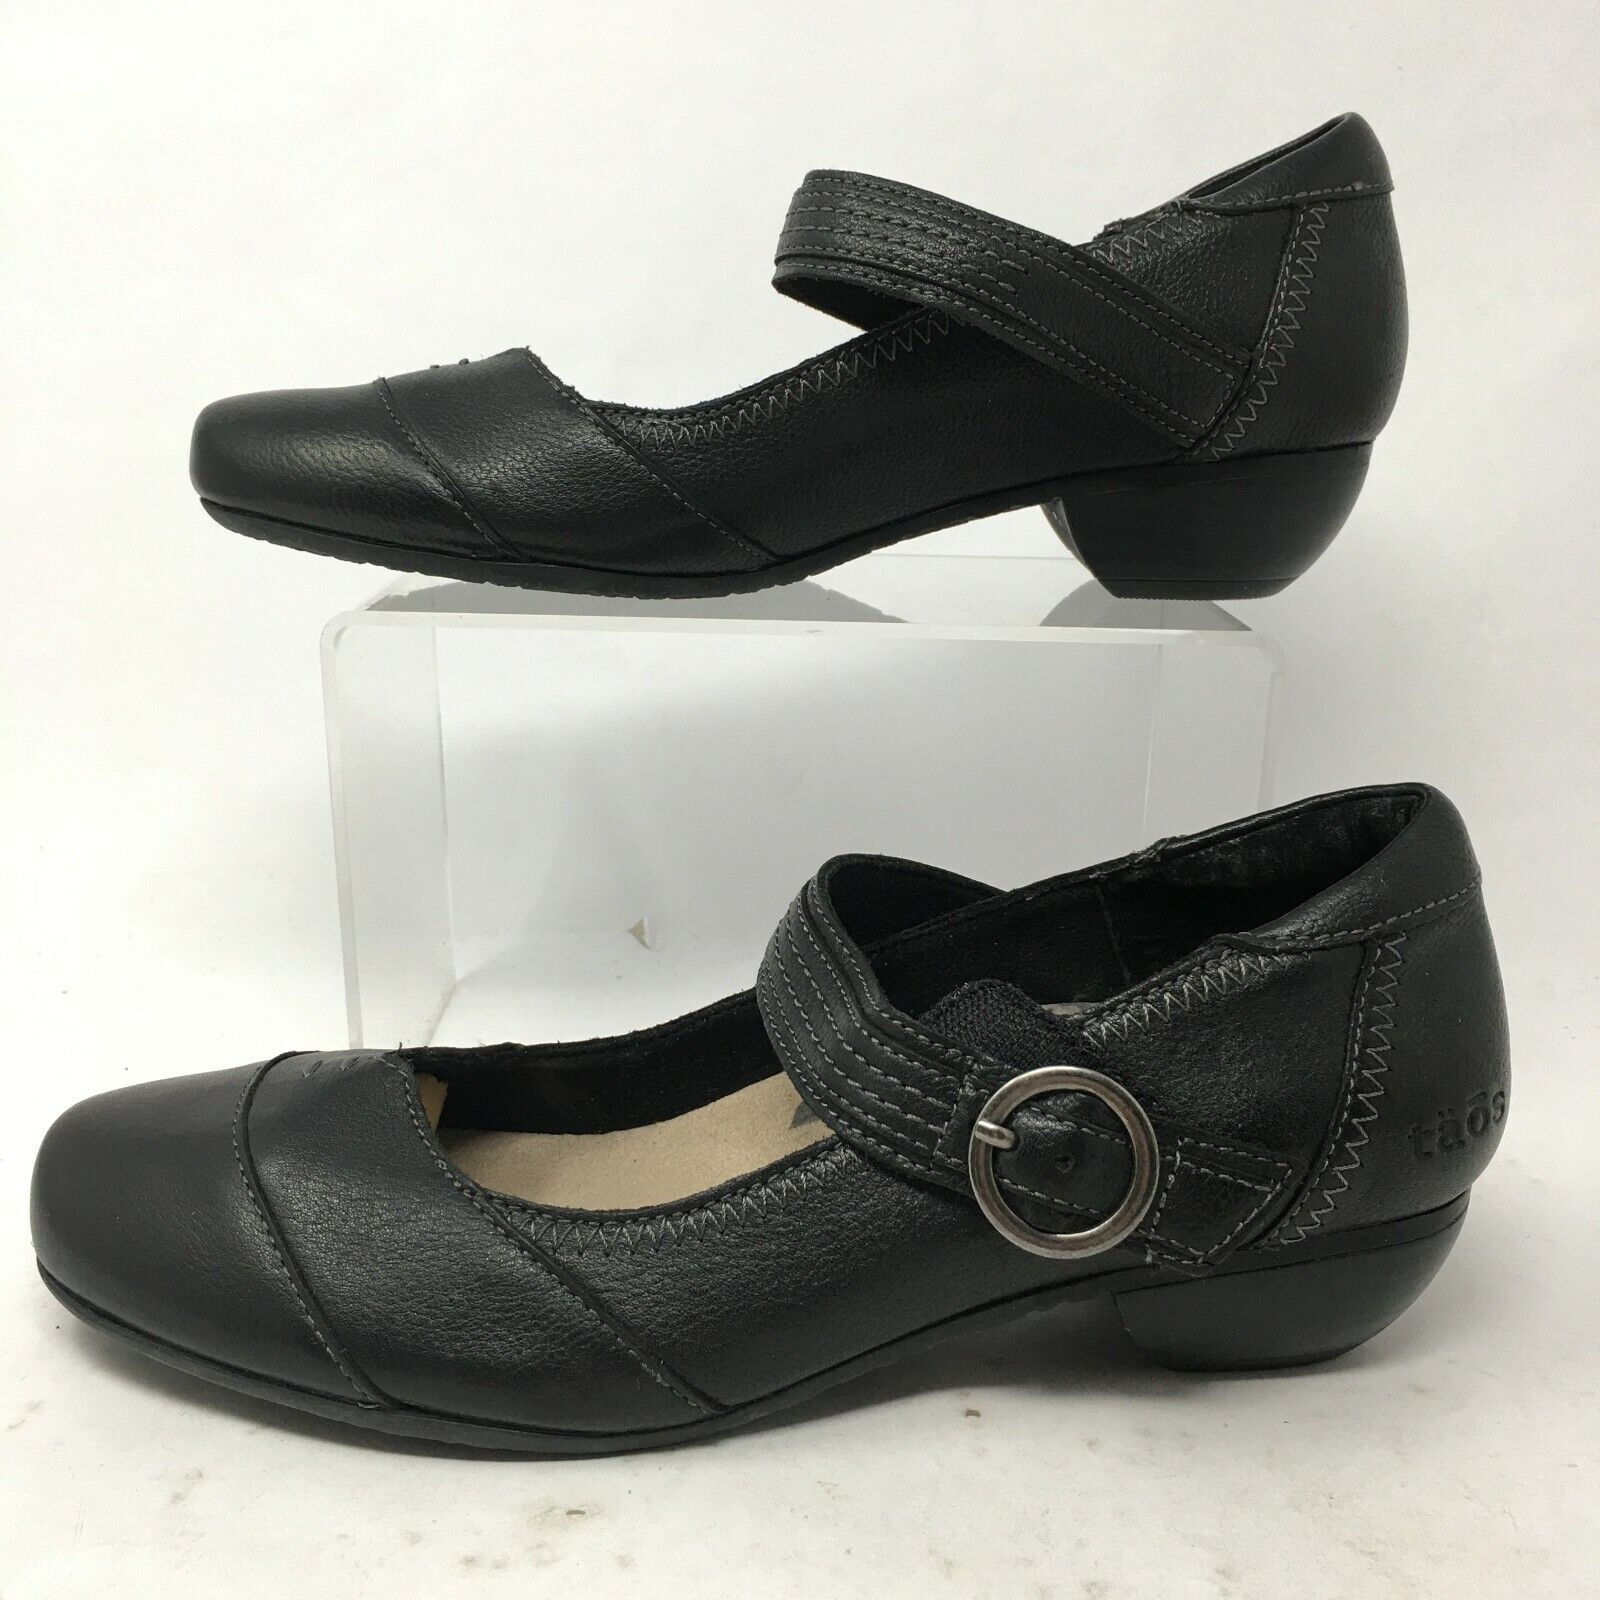 Taos Womens 6.5 Virtue Mary Jane Slip On Casual Comfort Shoes Black Leather